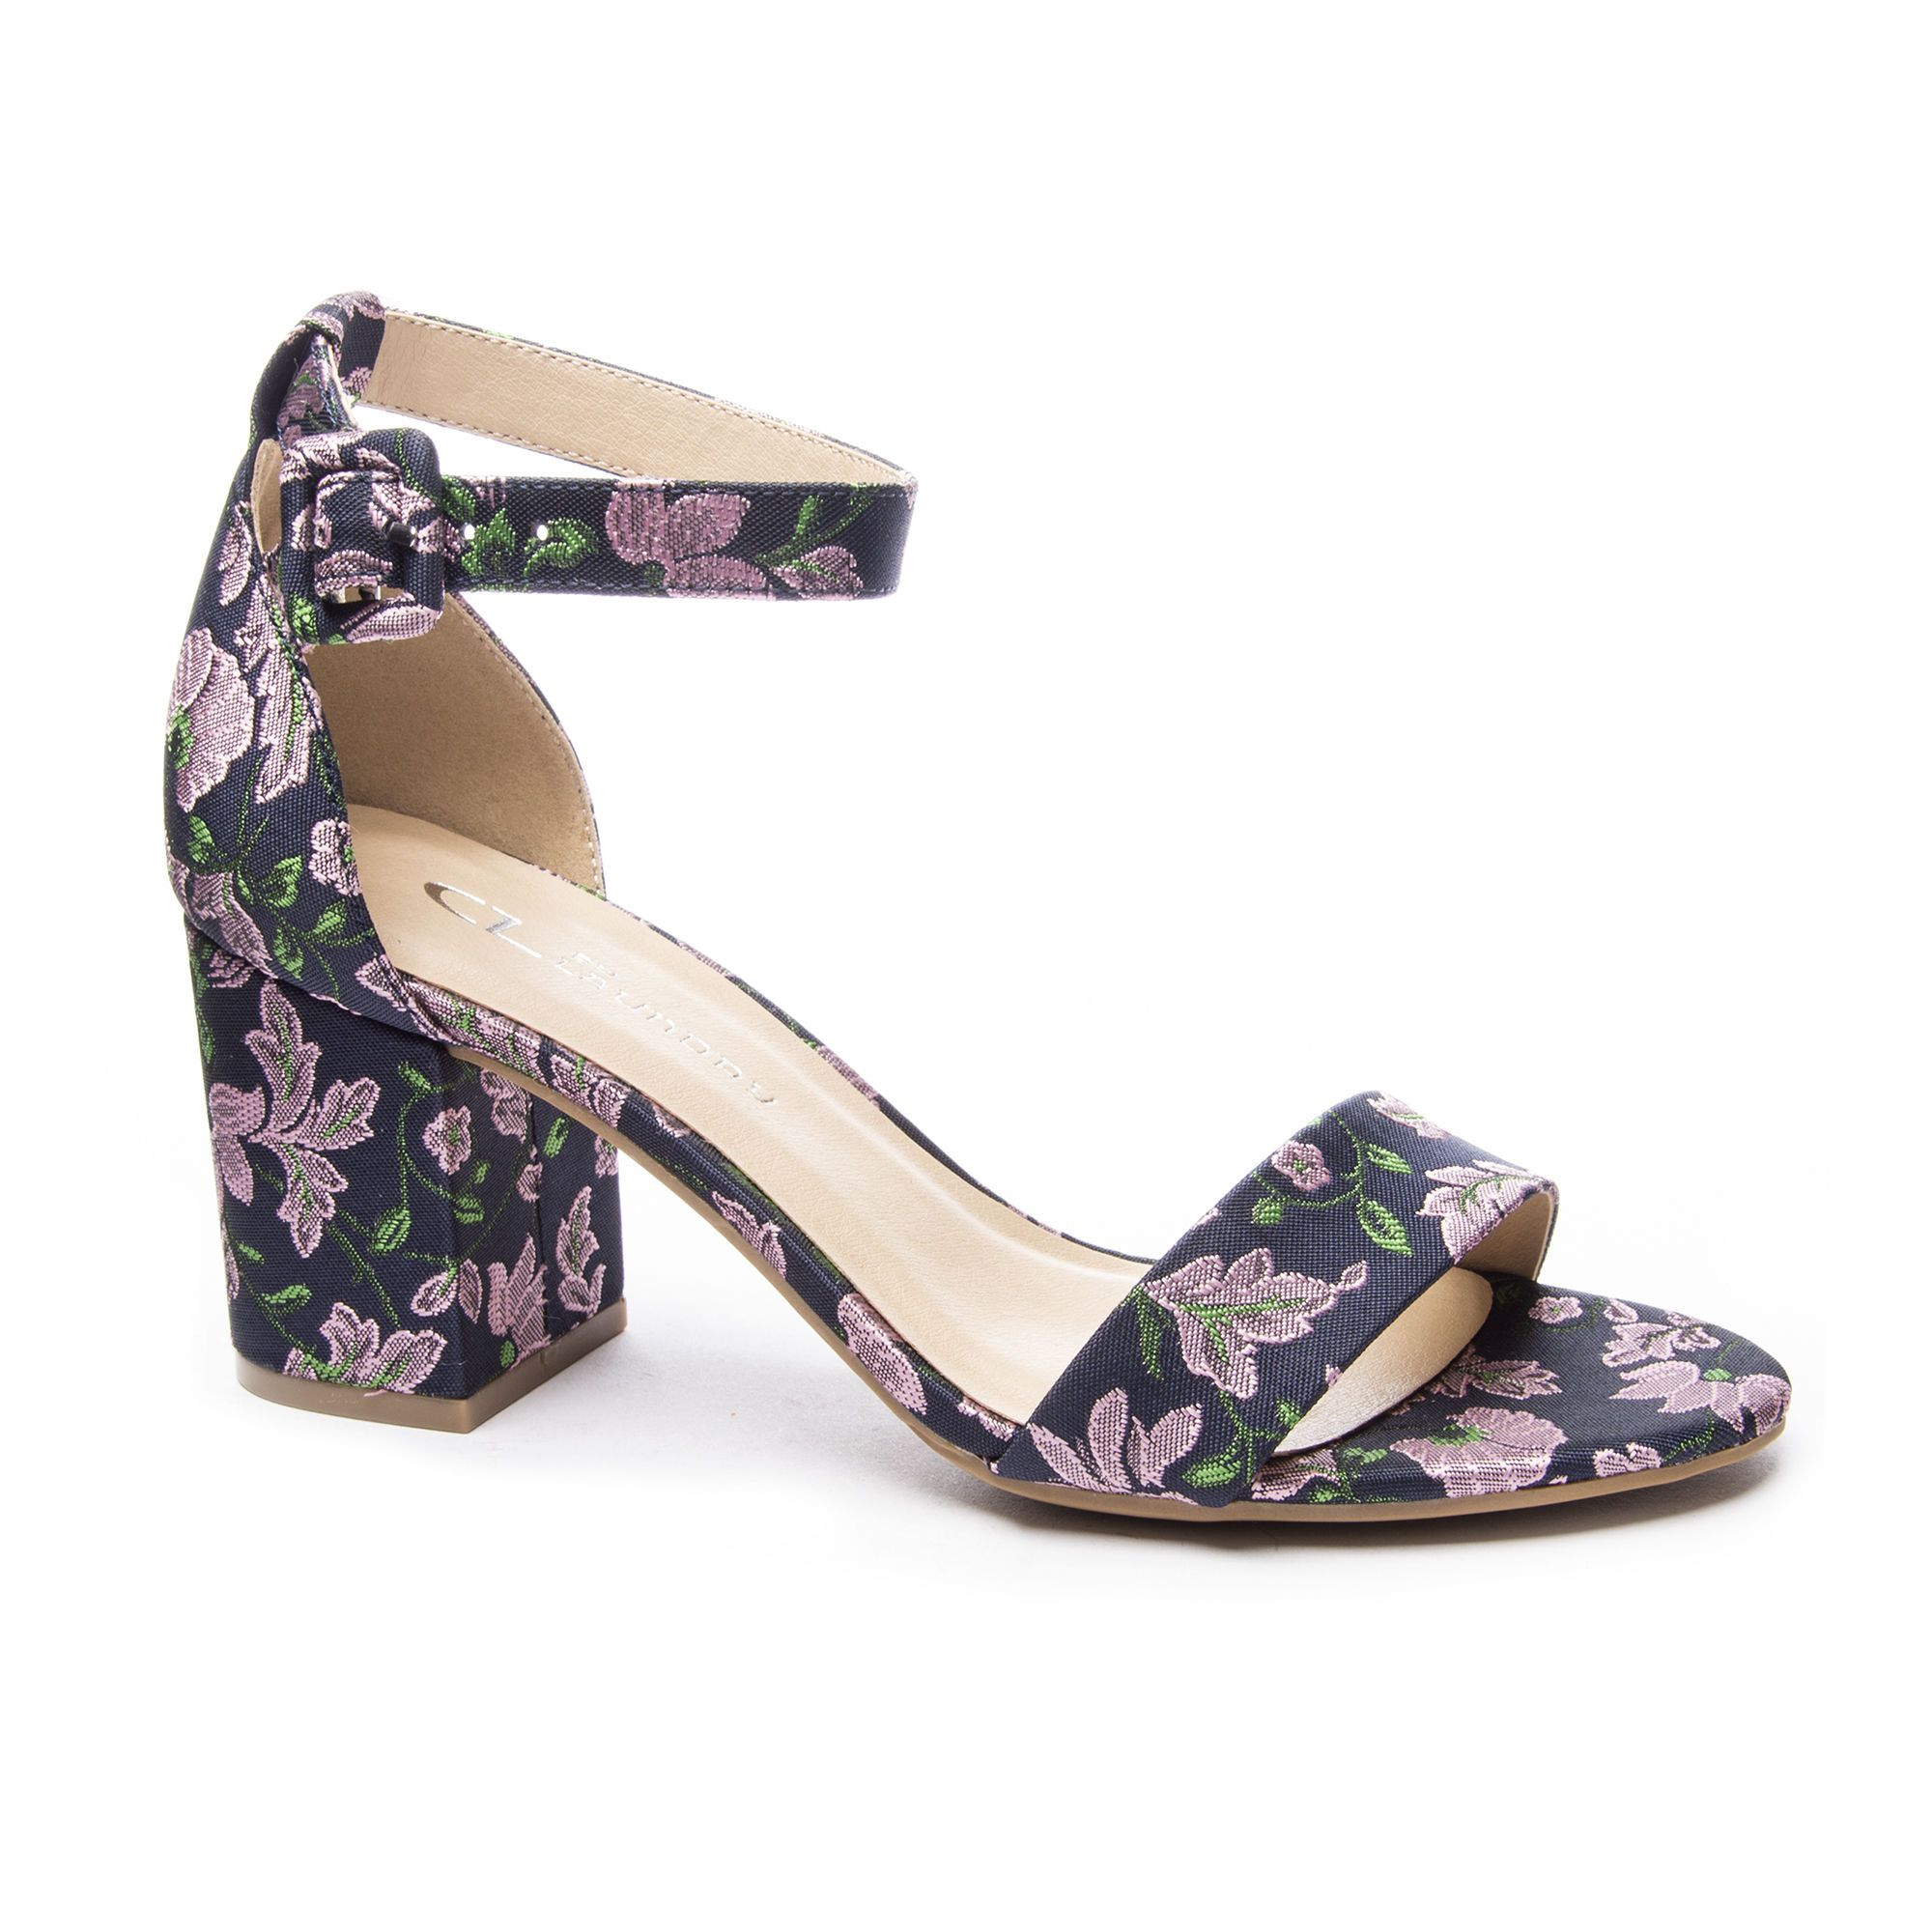 e263a43bacf4 CL by Laundry Jody Floral Brocade Block Heel Sandal